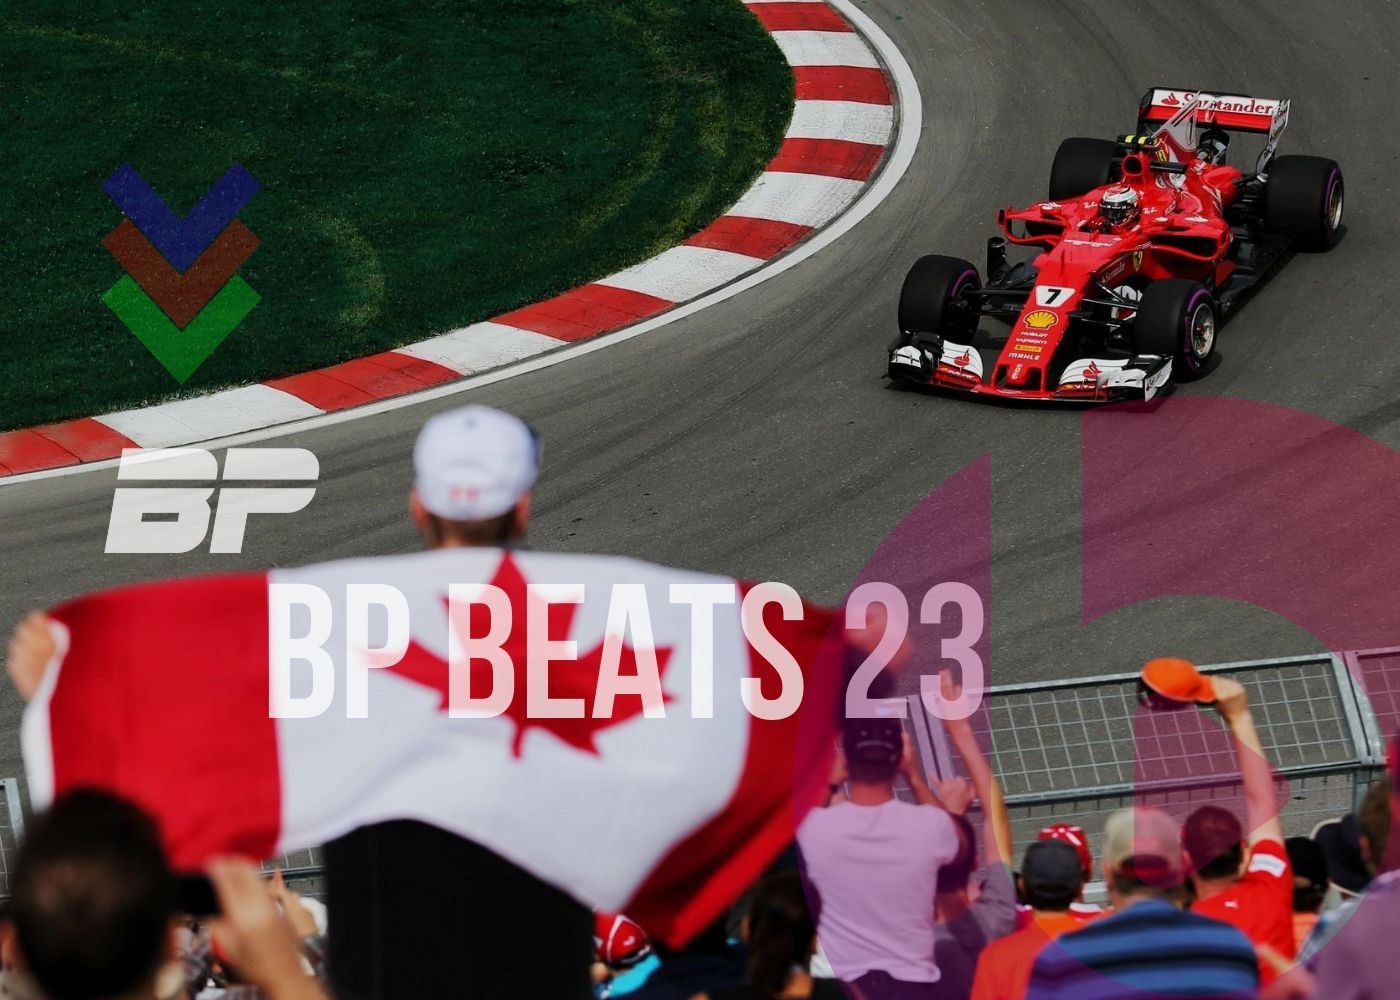 Foto de BP Beats 23 | Canadian Club Mix